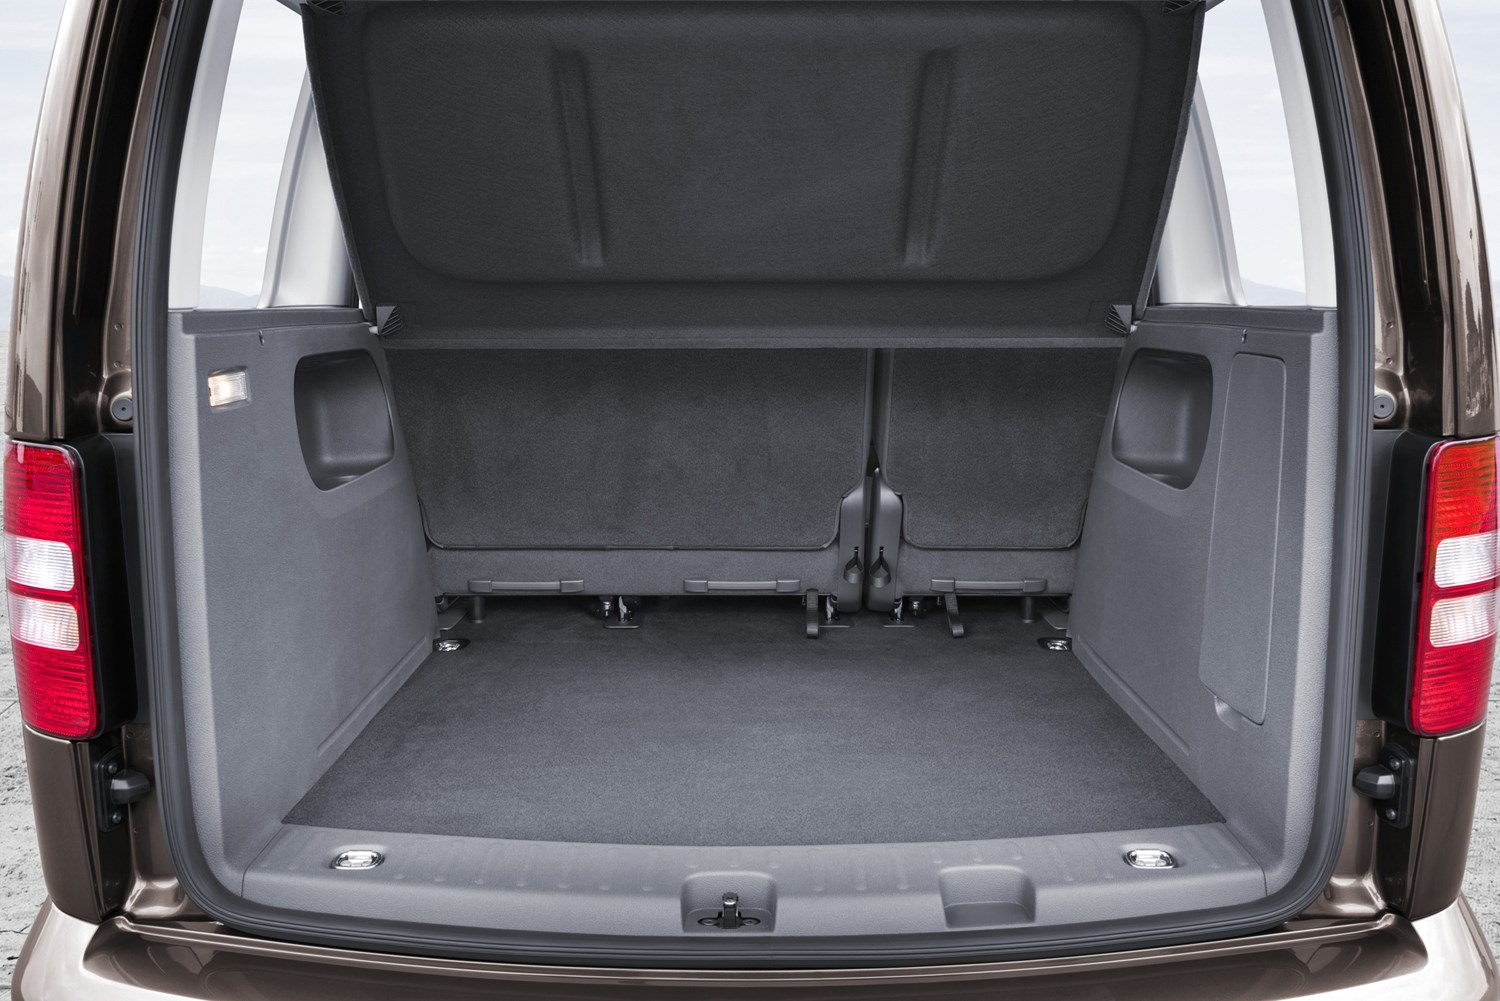 volkswagen caddy maxi life estate 2010 2015 features equipment and accessories parkers. Black Bedroom Furniture Sets. Home Design Ideas